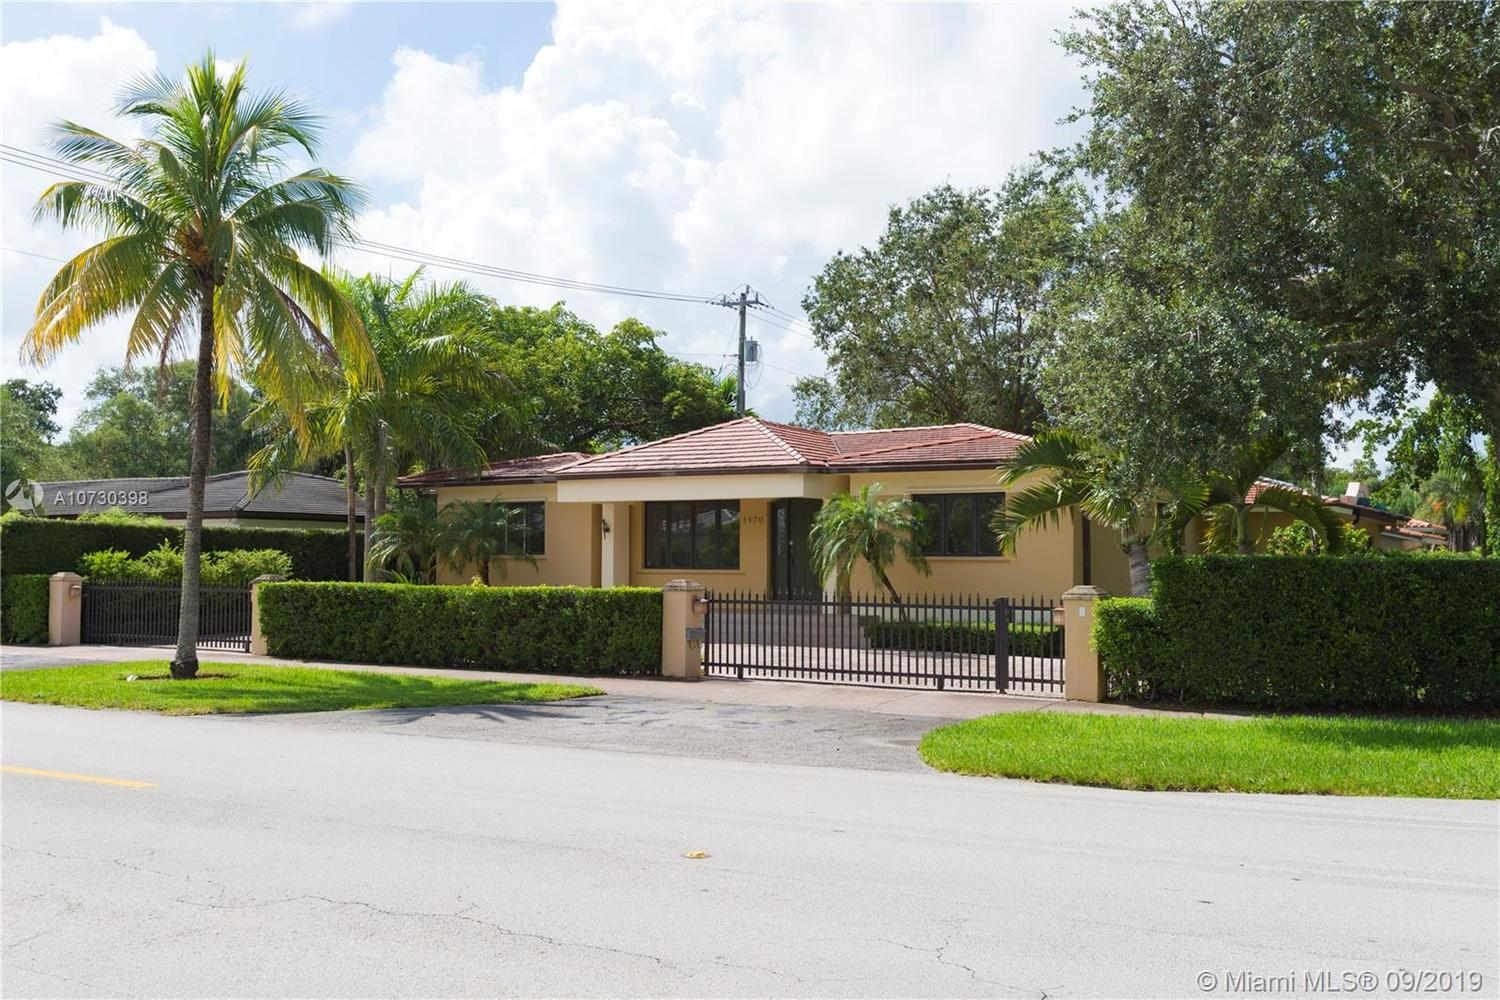 1170 South Alhambra Circle Coral Gables, FL 33146